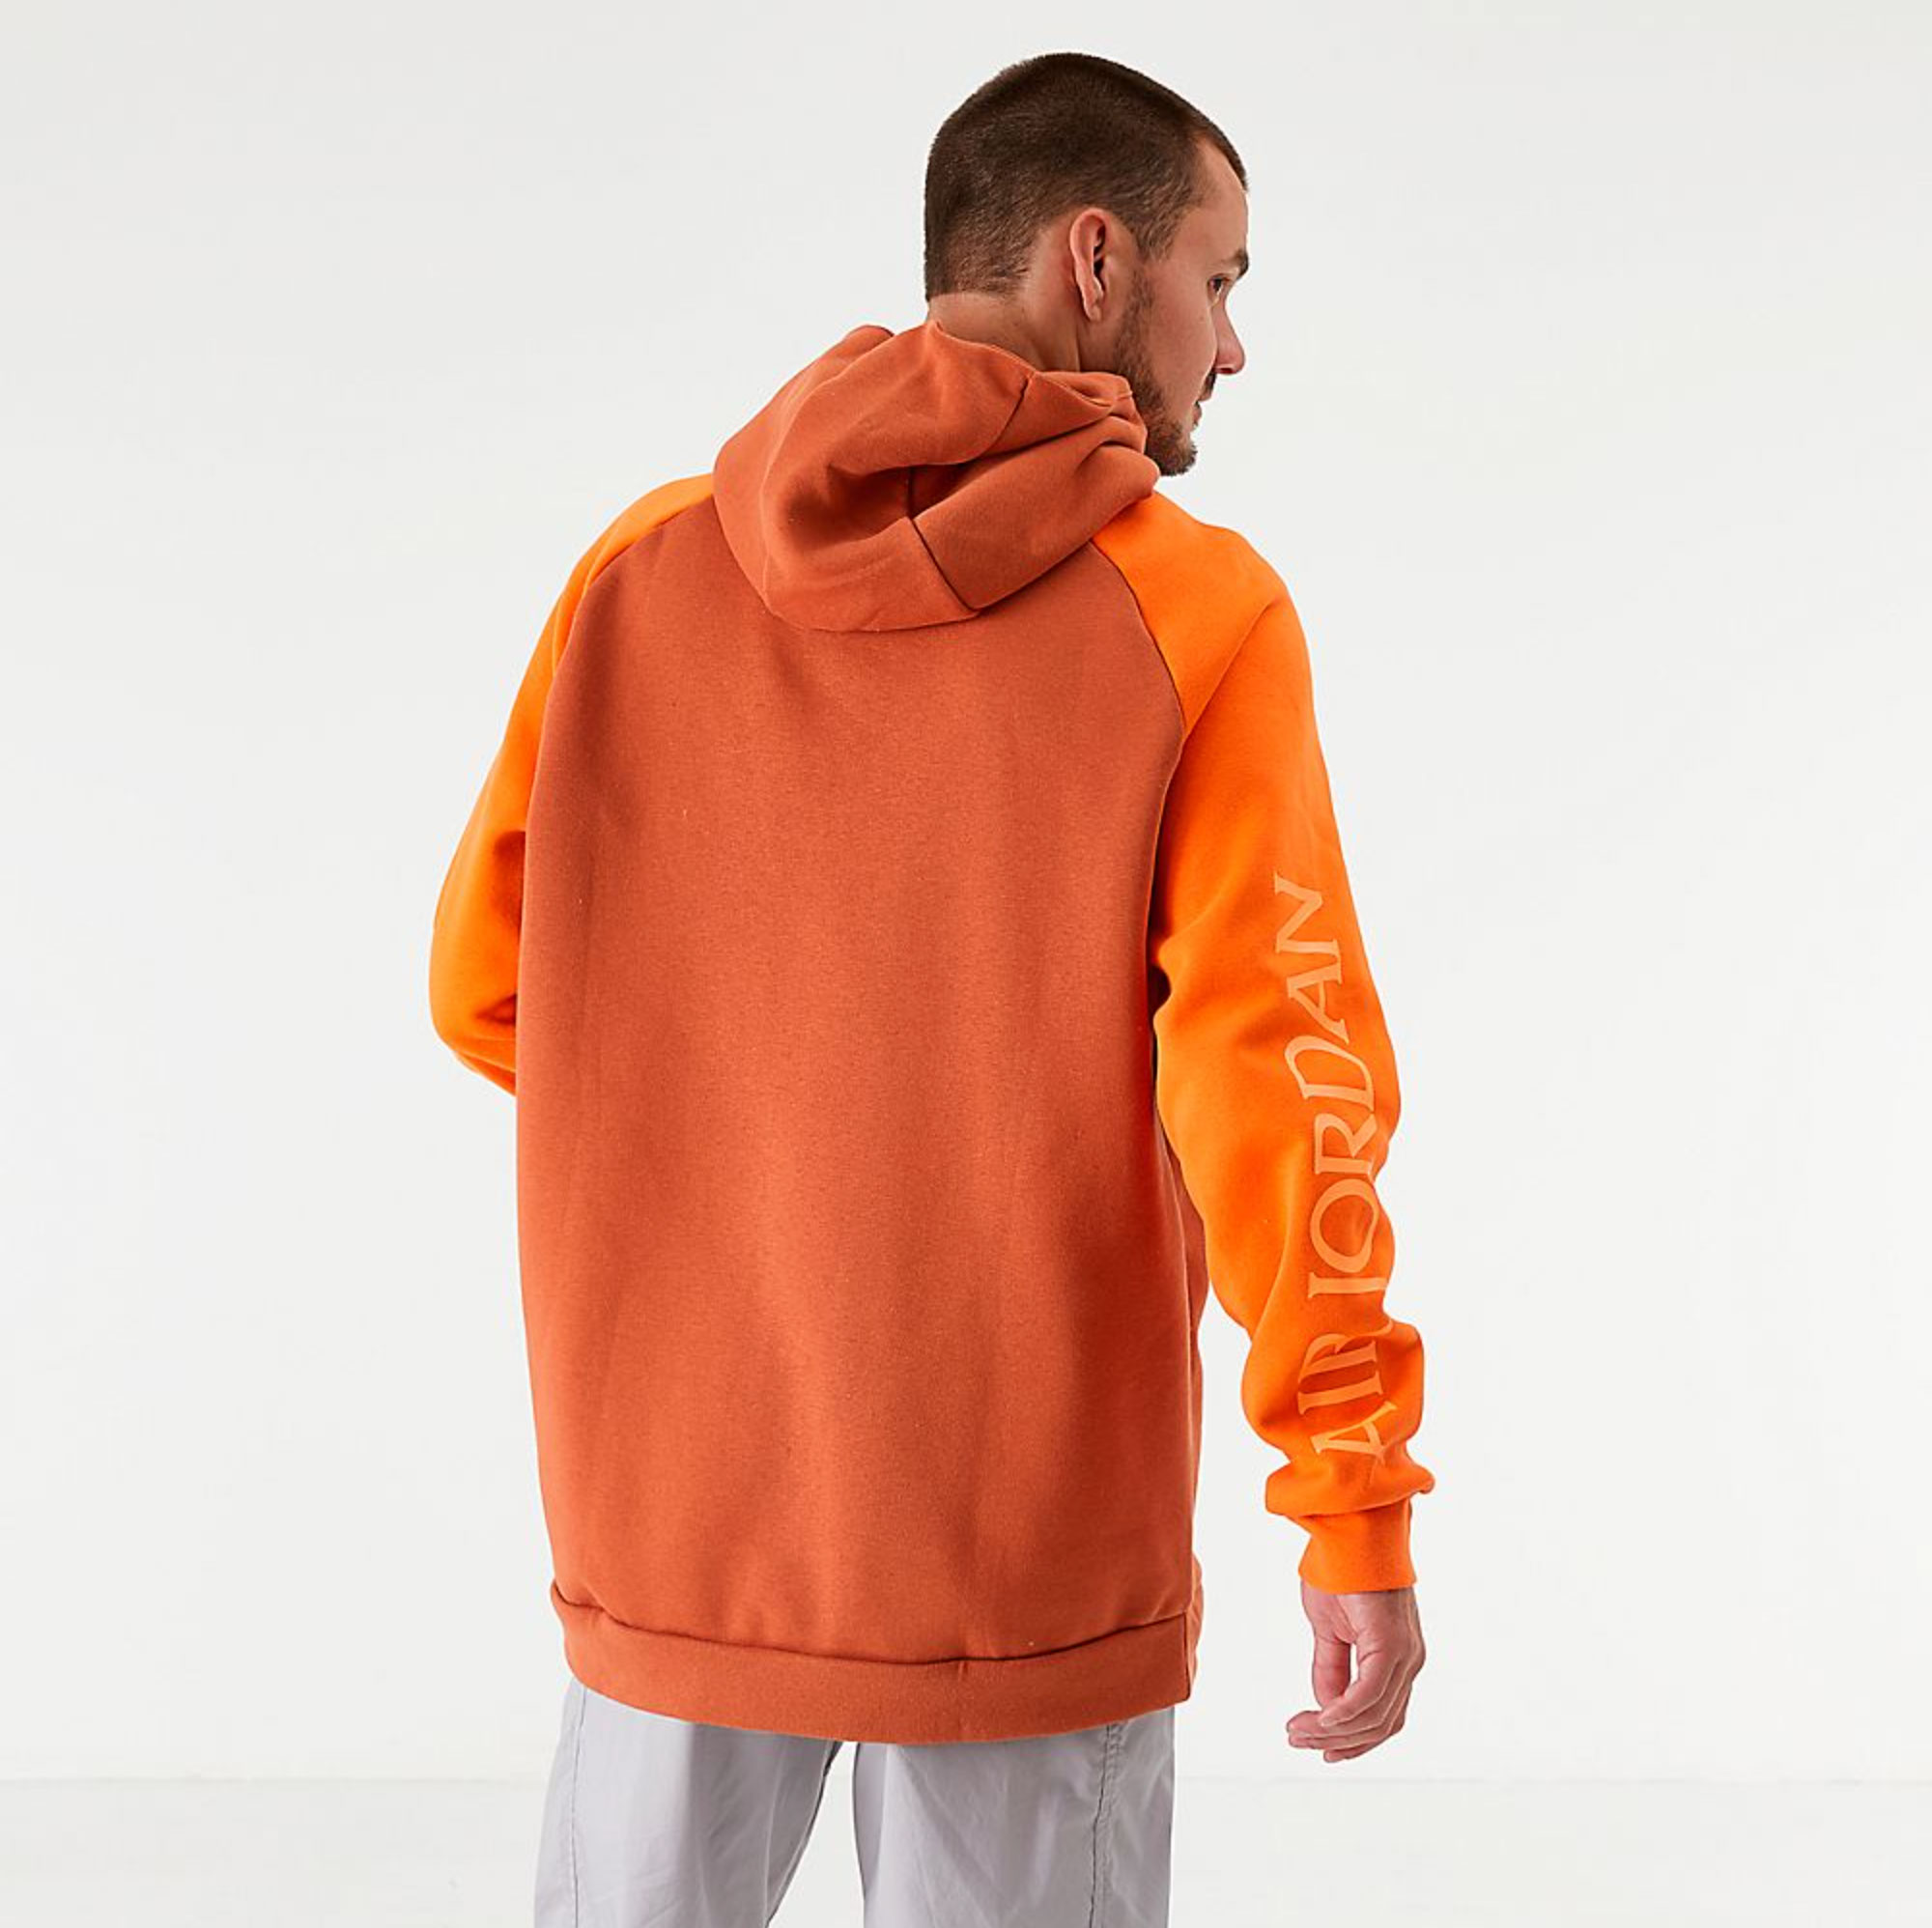 jordan-shattered-backboard-hoodie-match-3